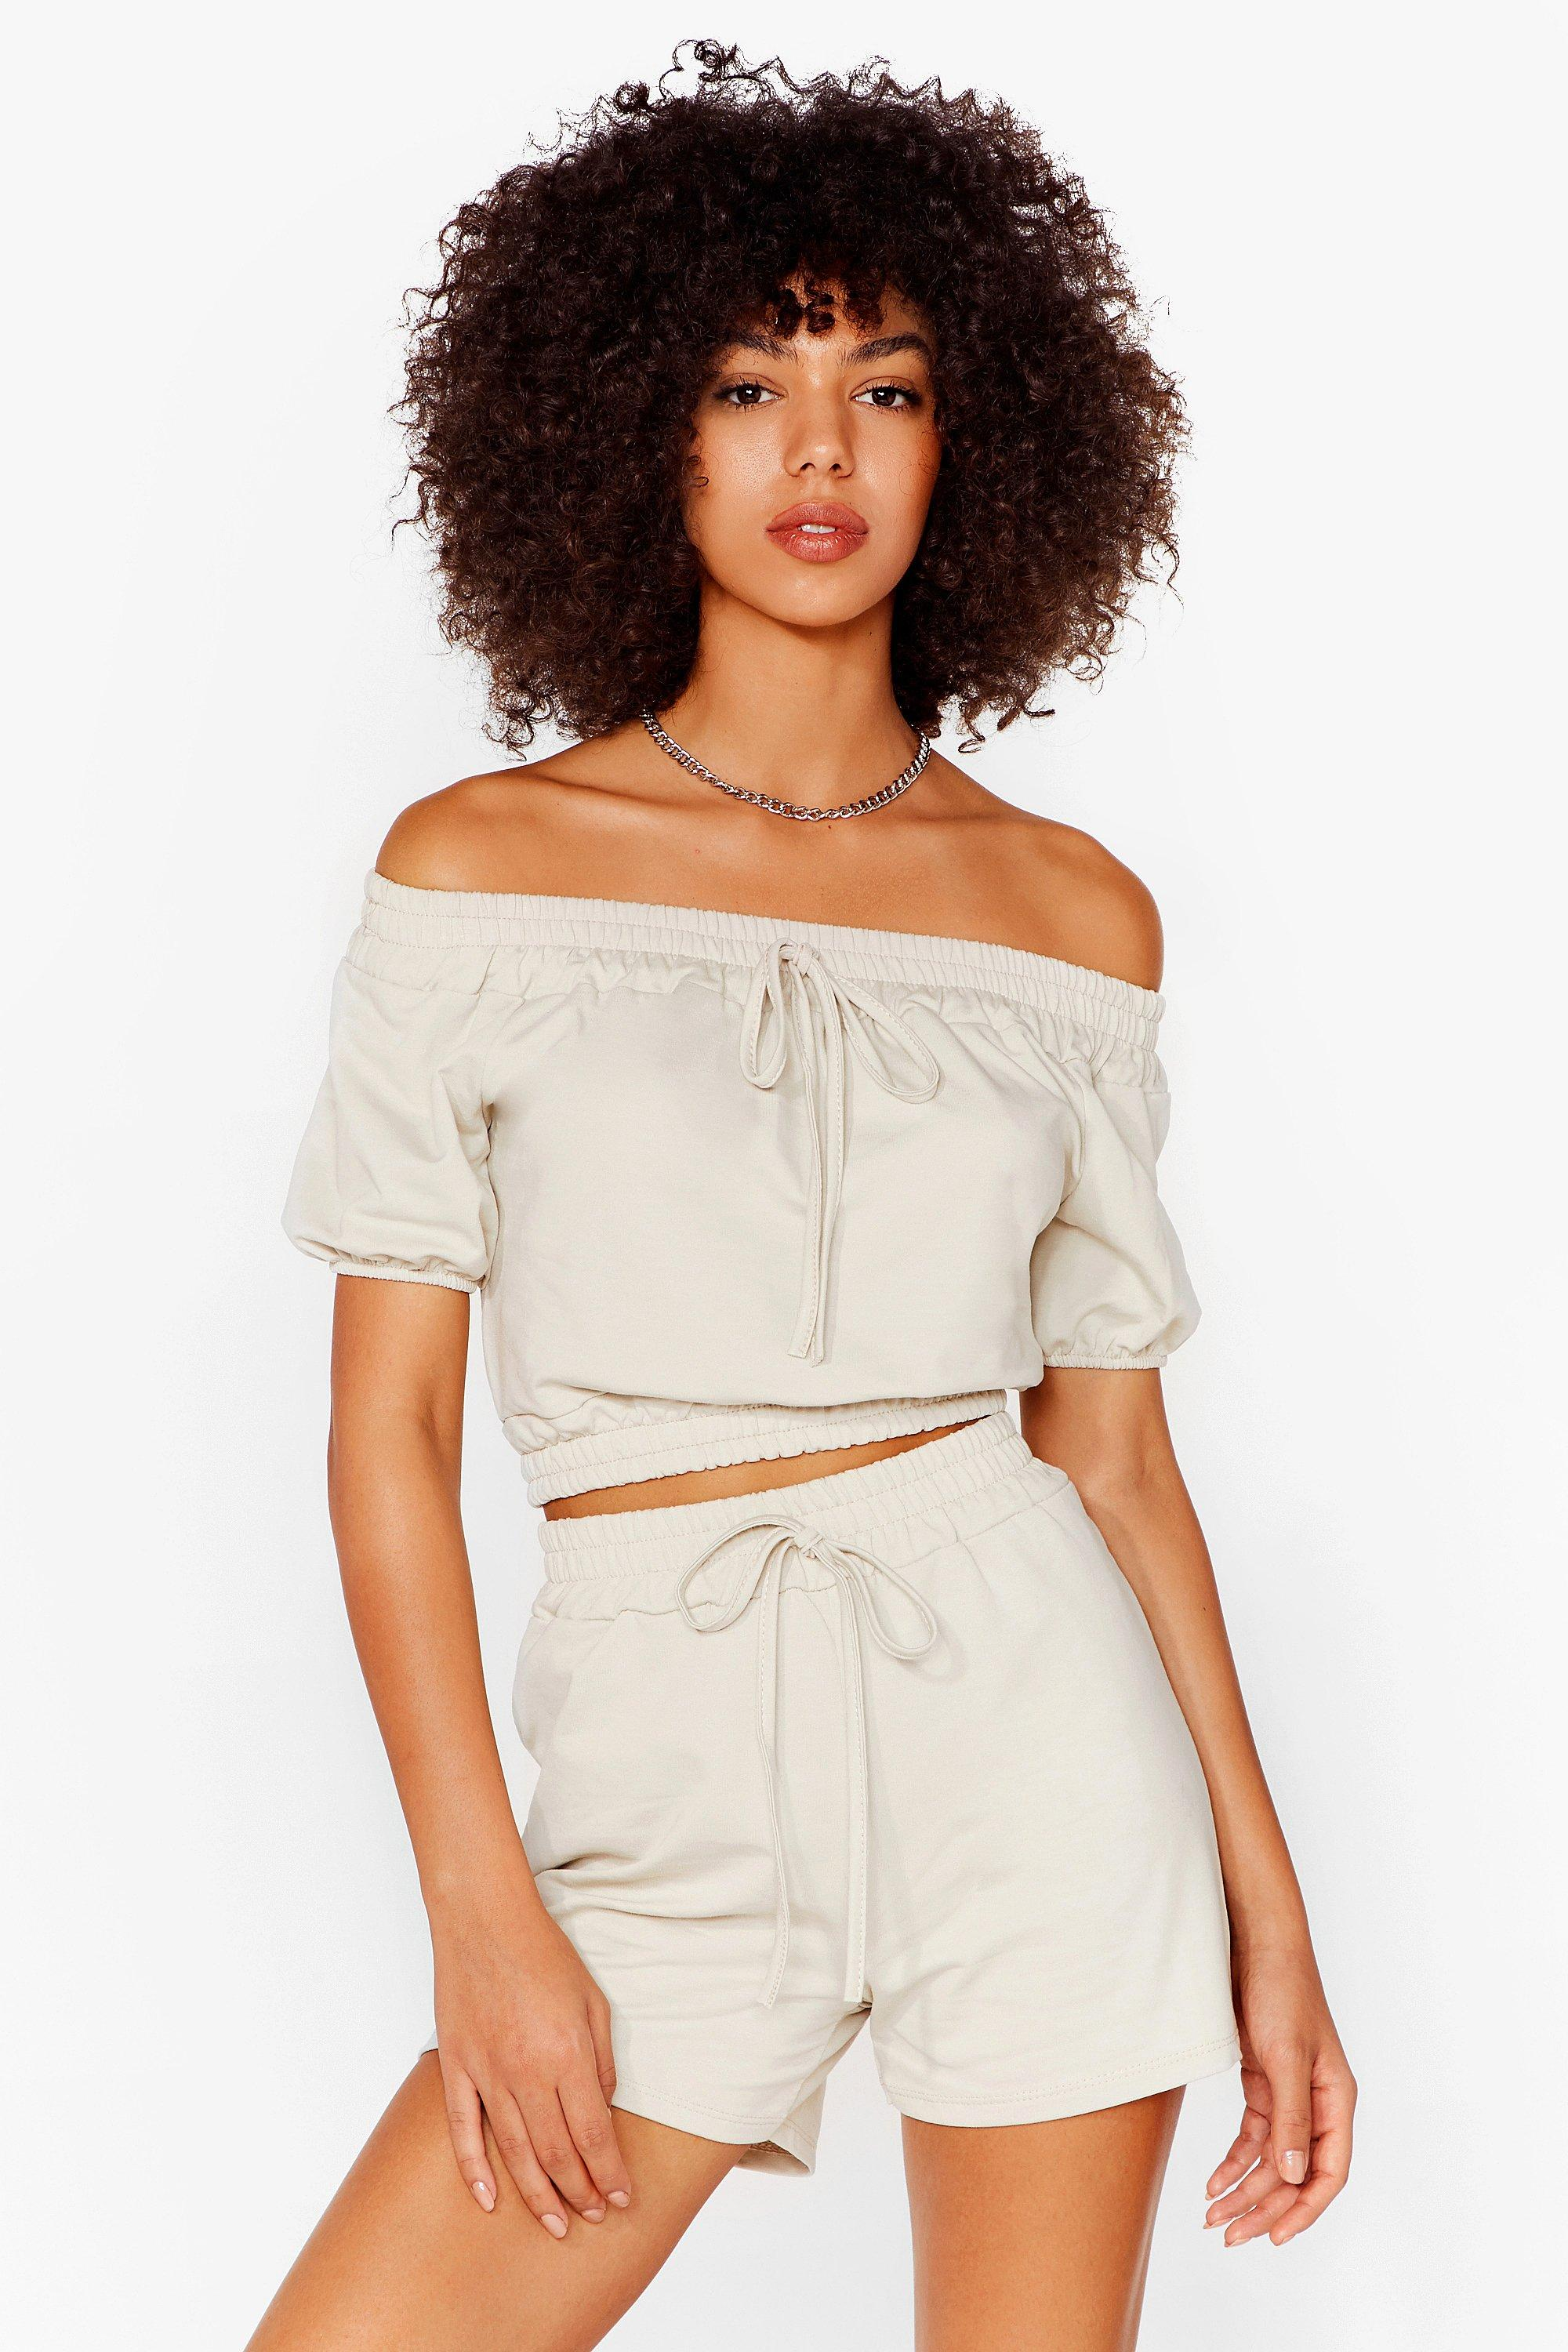 Image of Womens Day Off-the-Shoulder Crop Top and Shorts Set - Stone